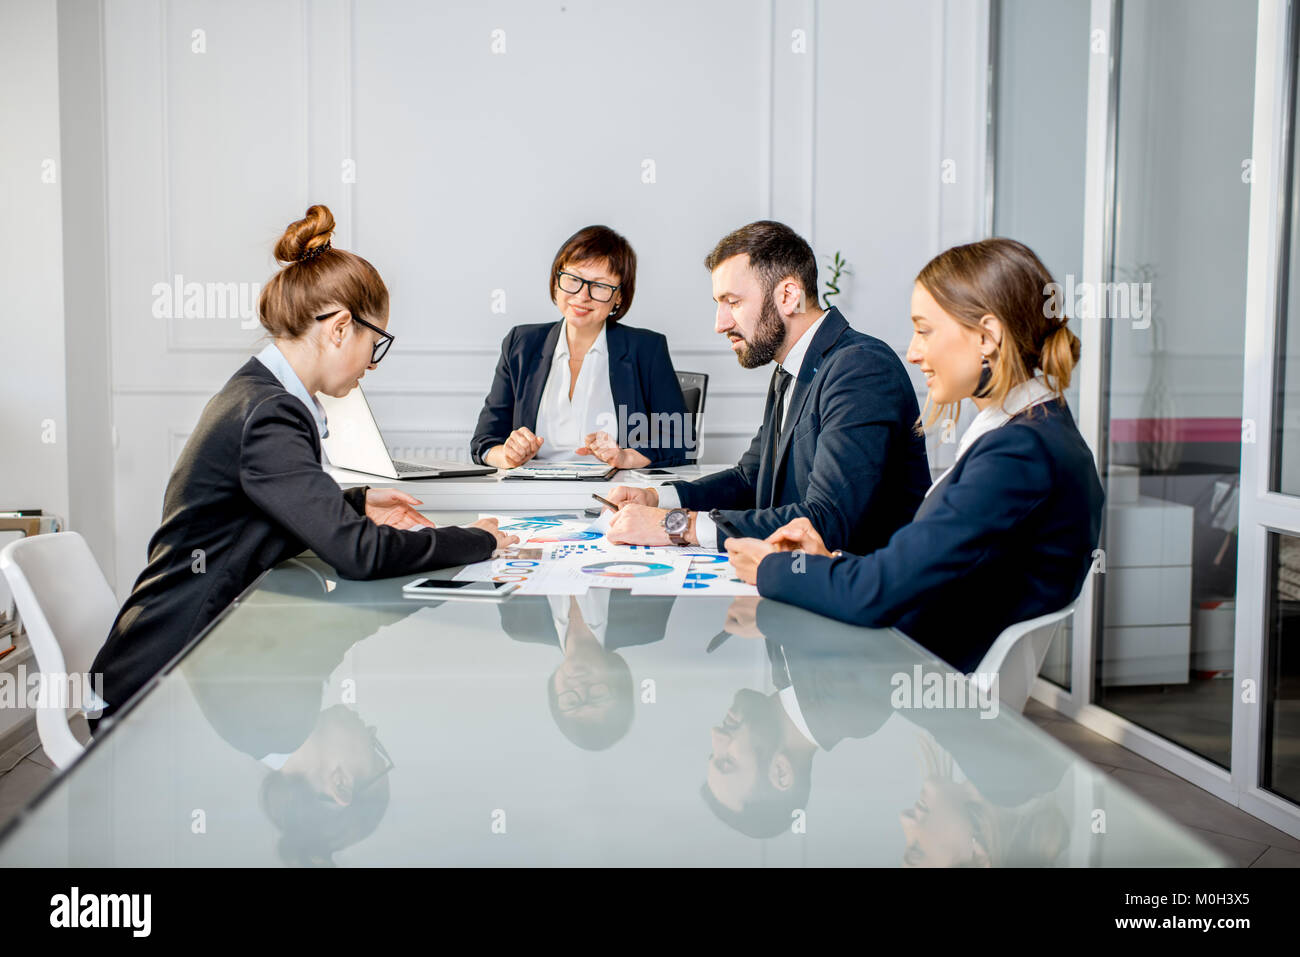 Business people during the conference in the office - Stock Image